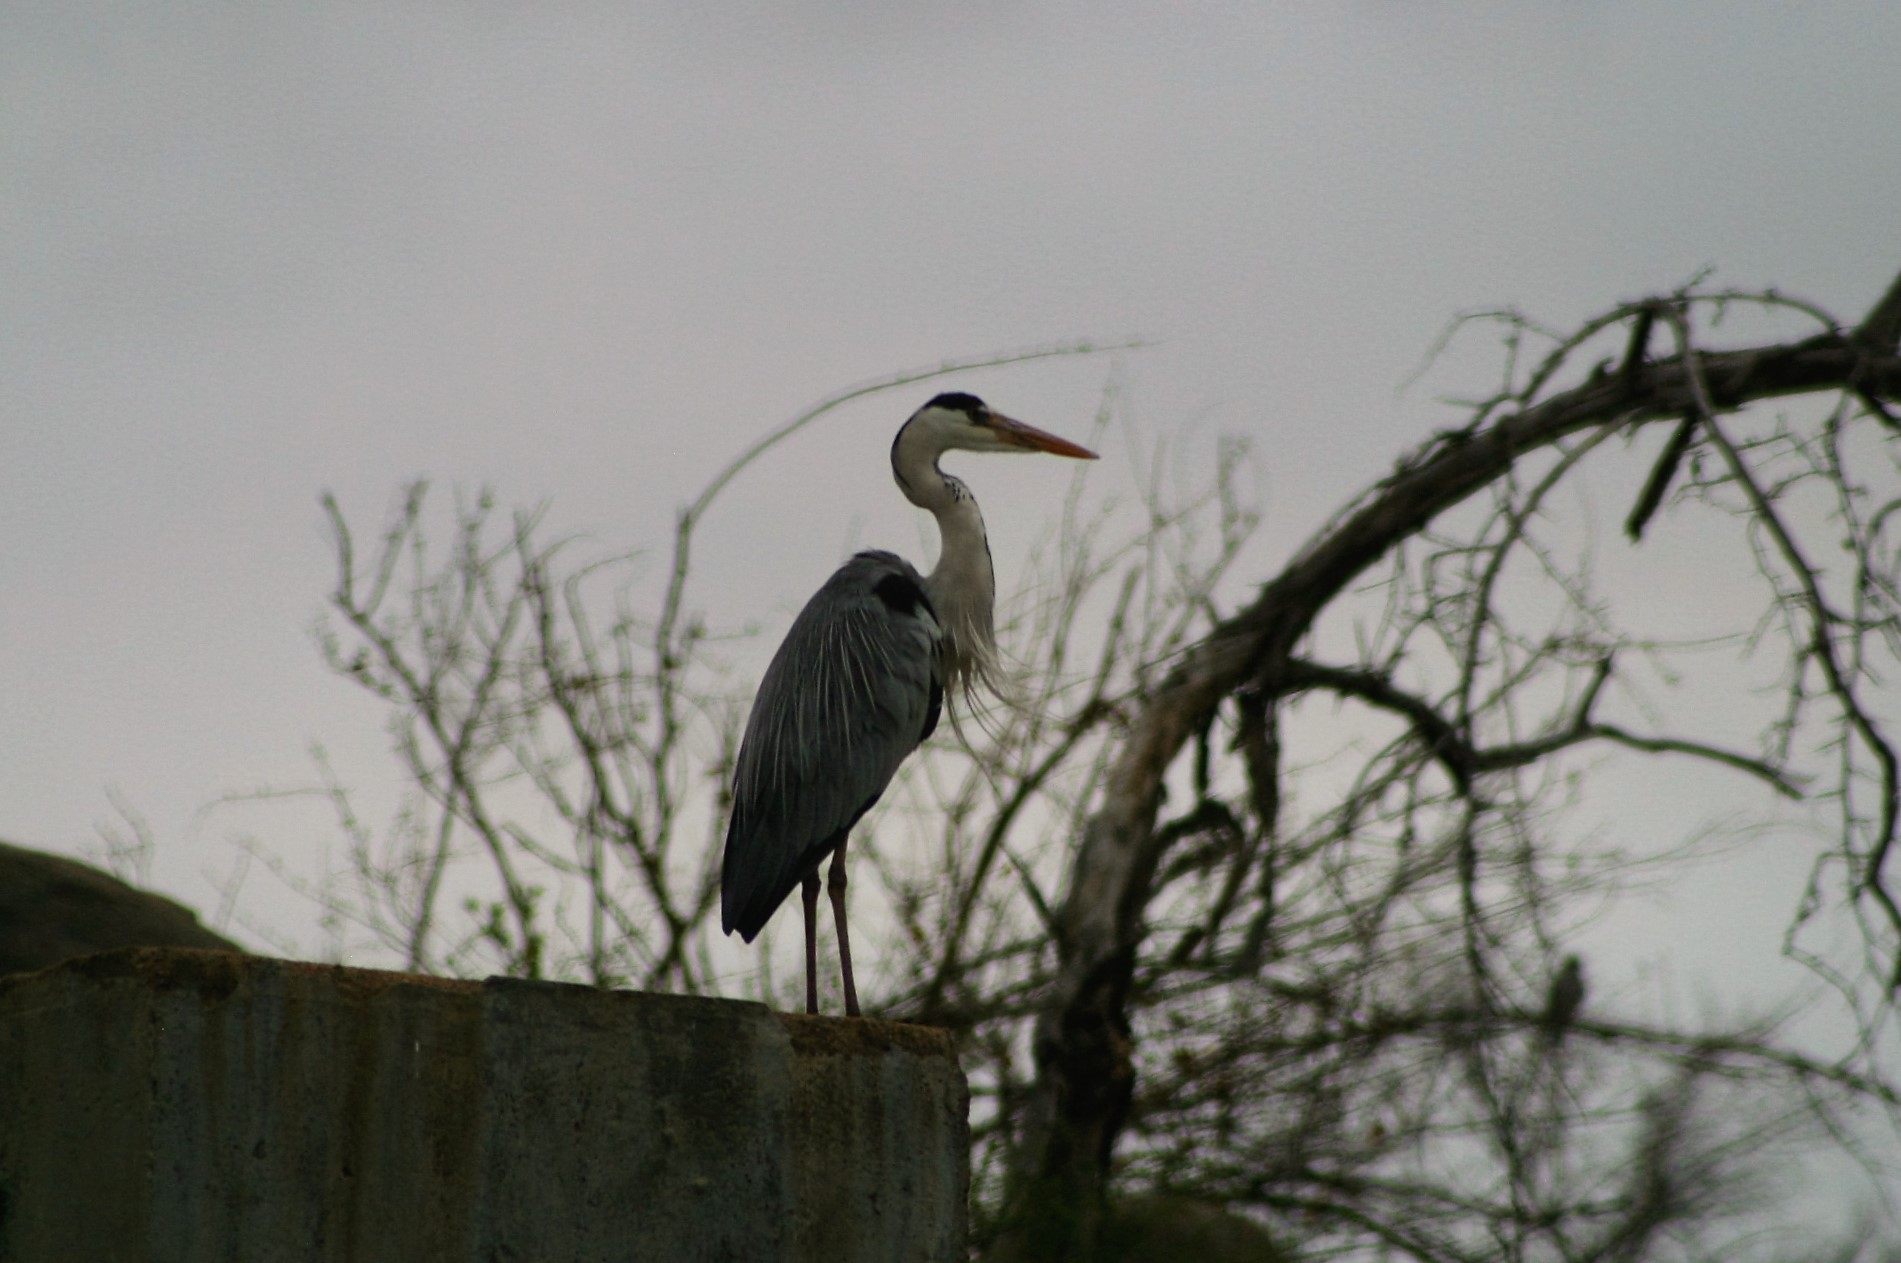 Heron looking on